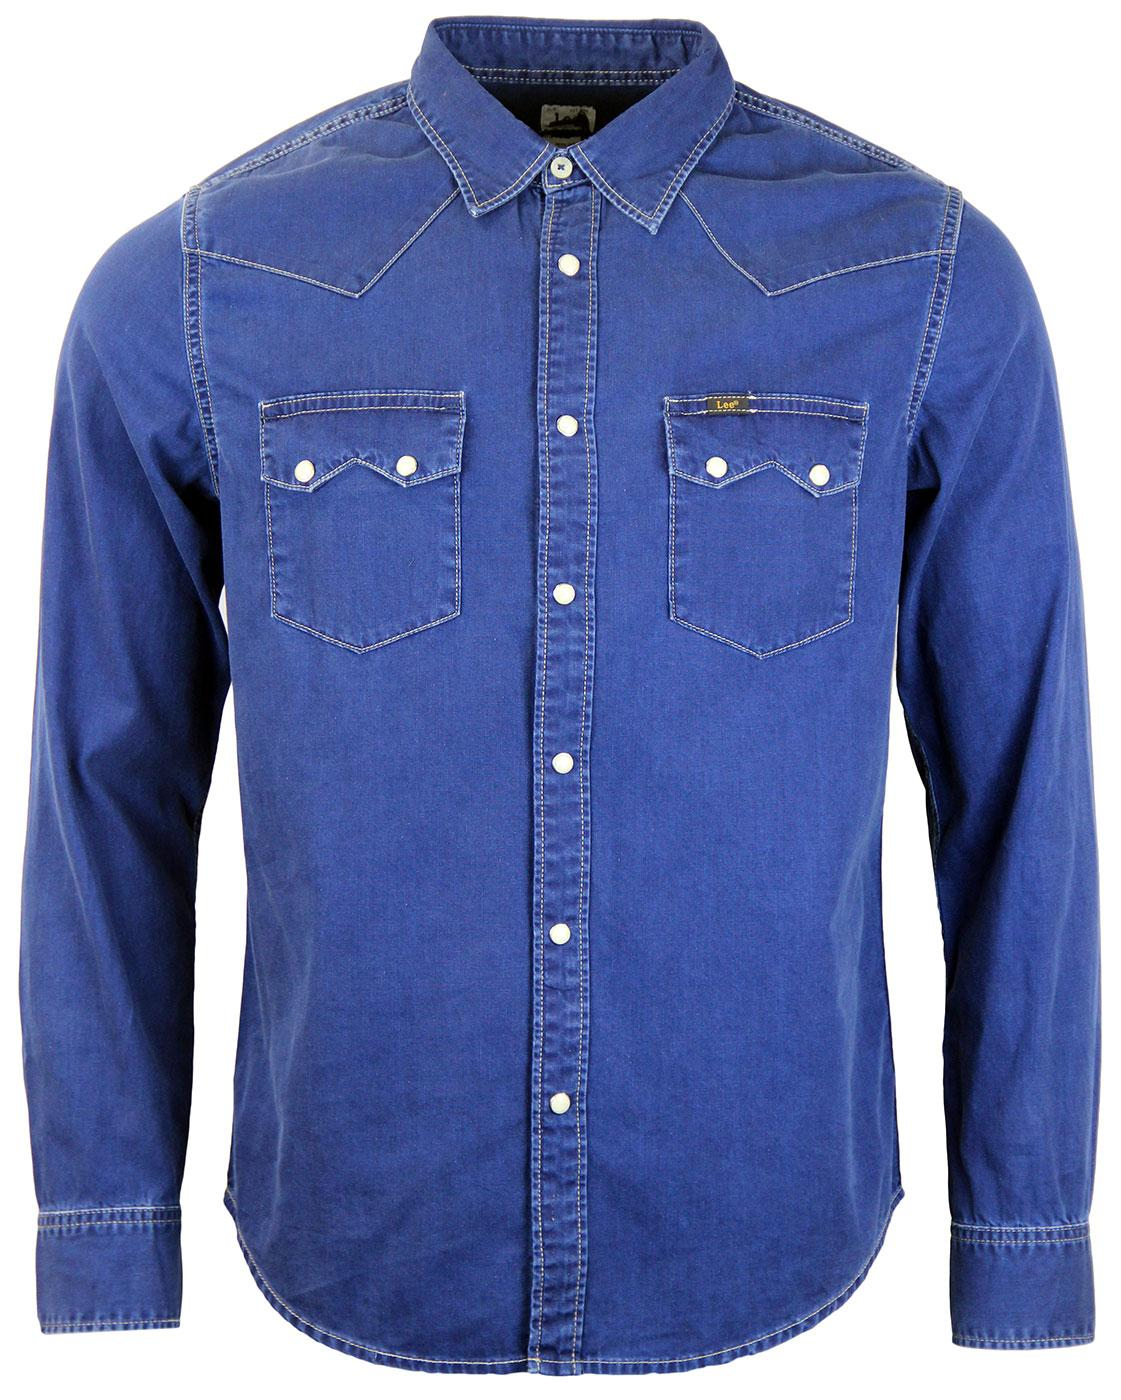 Shop For Sale Outlet Low Price Fee Shipping DENIM - Denim shirts Lee Sale Eastbay Buy Cheap Really Clearance Browse NHSaUV